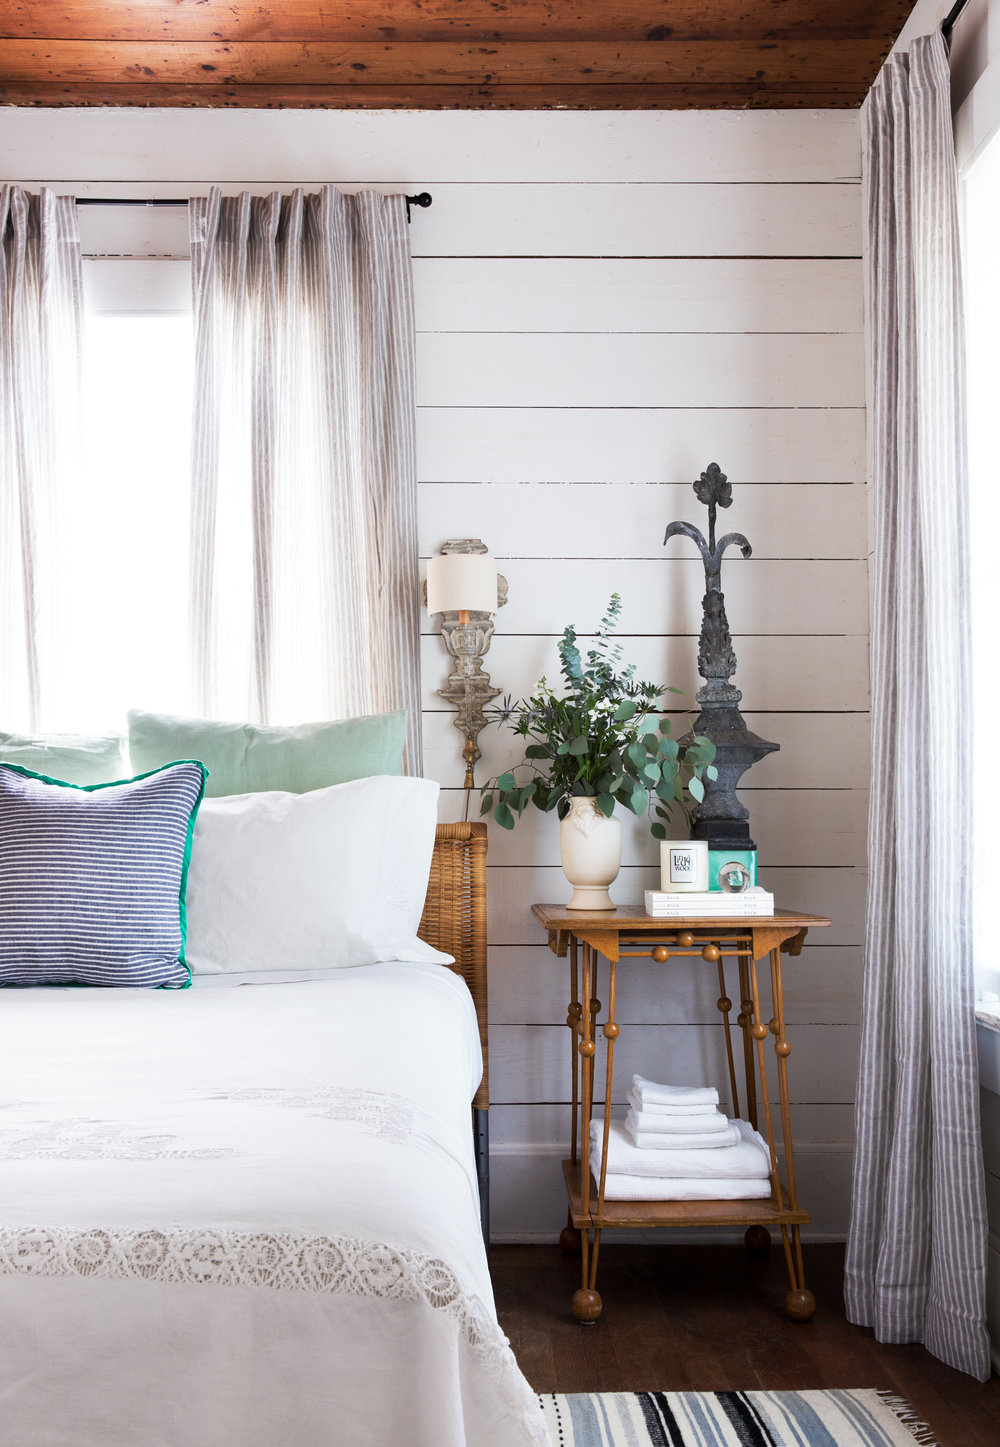 Avery Cox Design- Austin Texas East side bungalow featuring custom styling by Avery Cox. Antique oak stick and ball table with French painted sconces and shiplap walls.